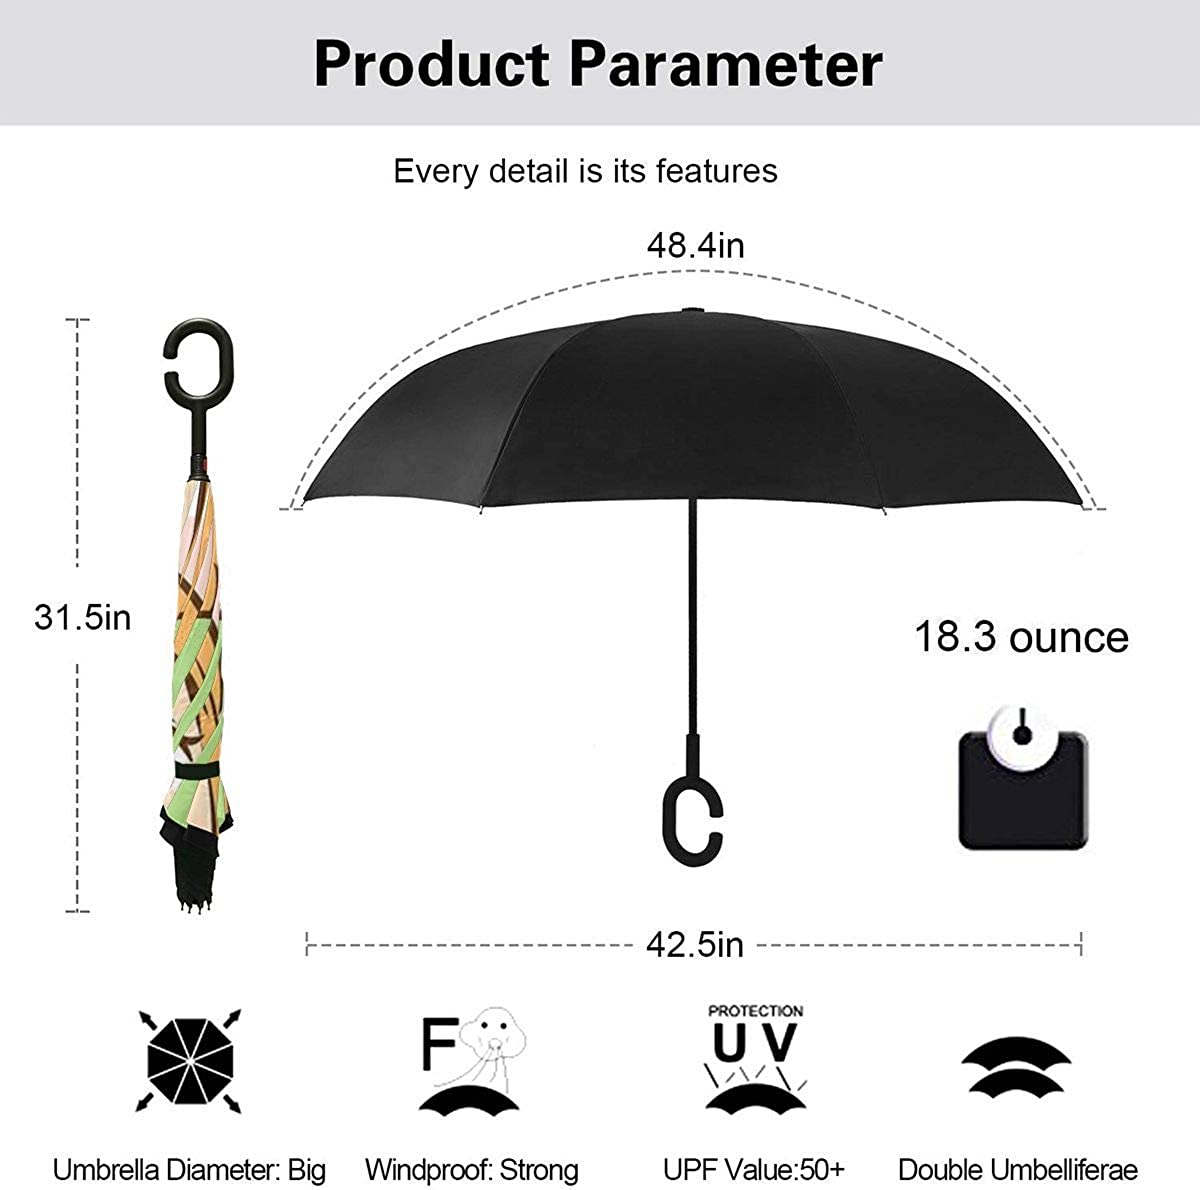 Reverse Umbrella Double Layer Inverted Umbrellas For Car Rain Outdoor With C-Shaped Handle Beautiful Girl Showing Thumbs Up Personalized